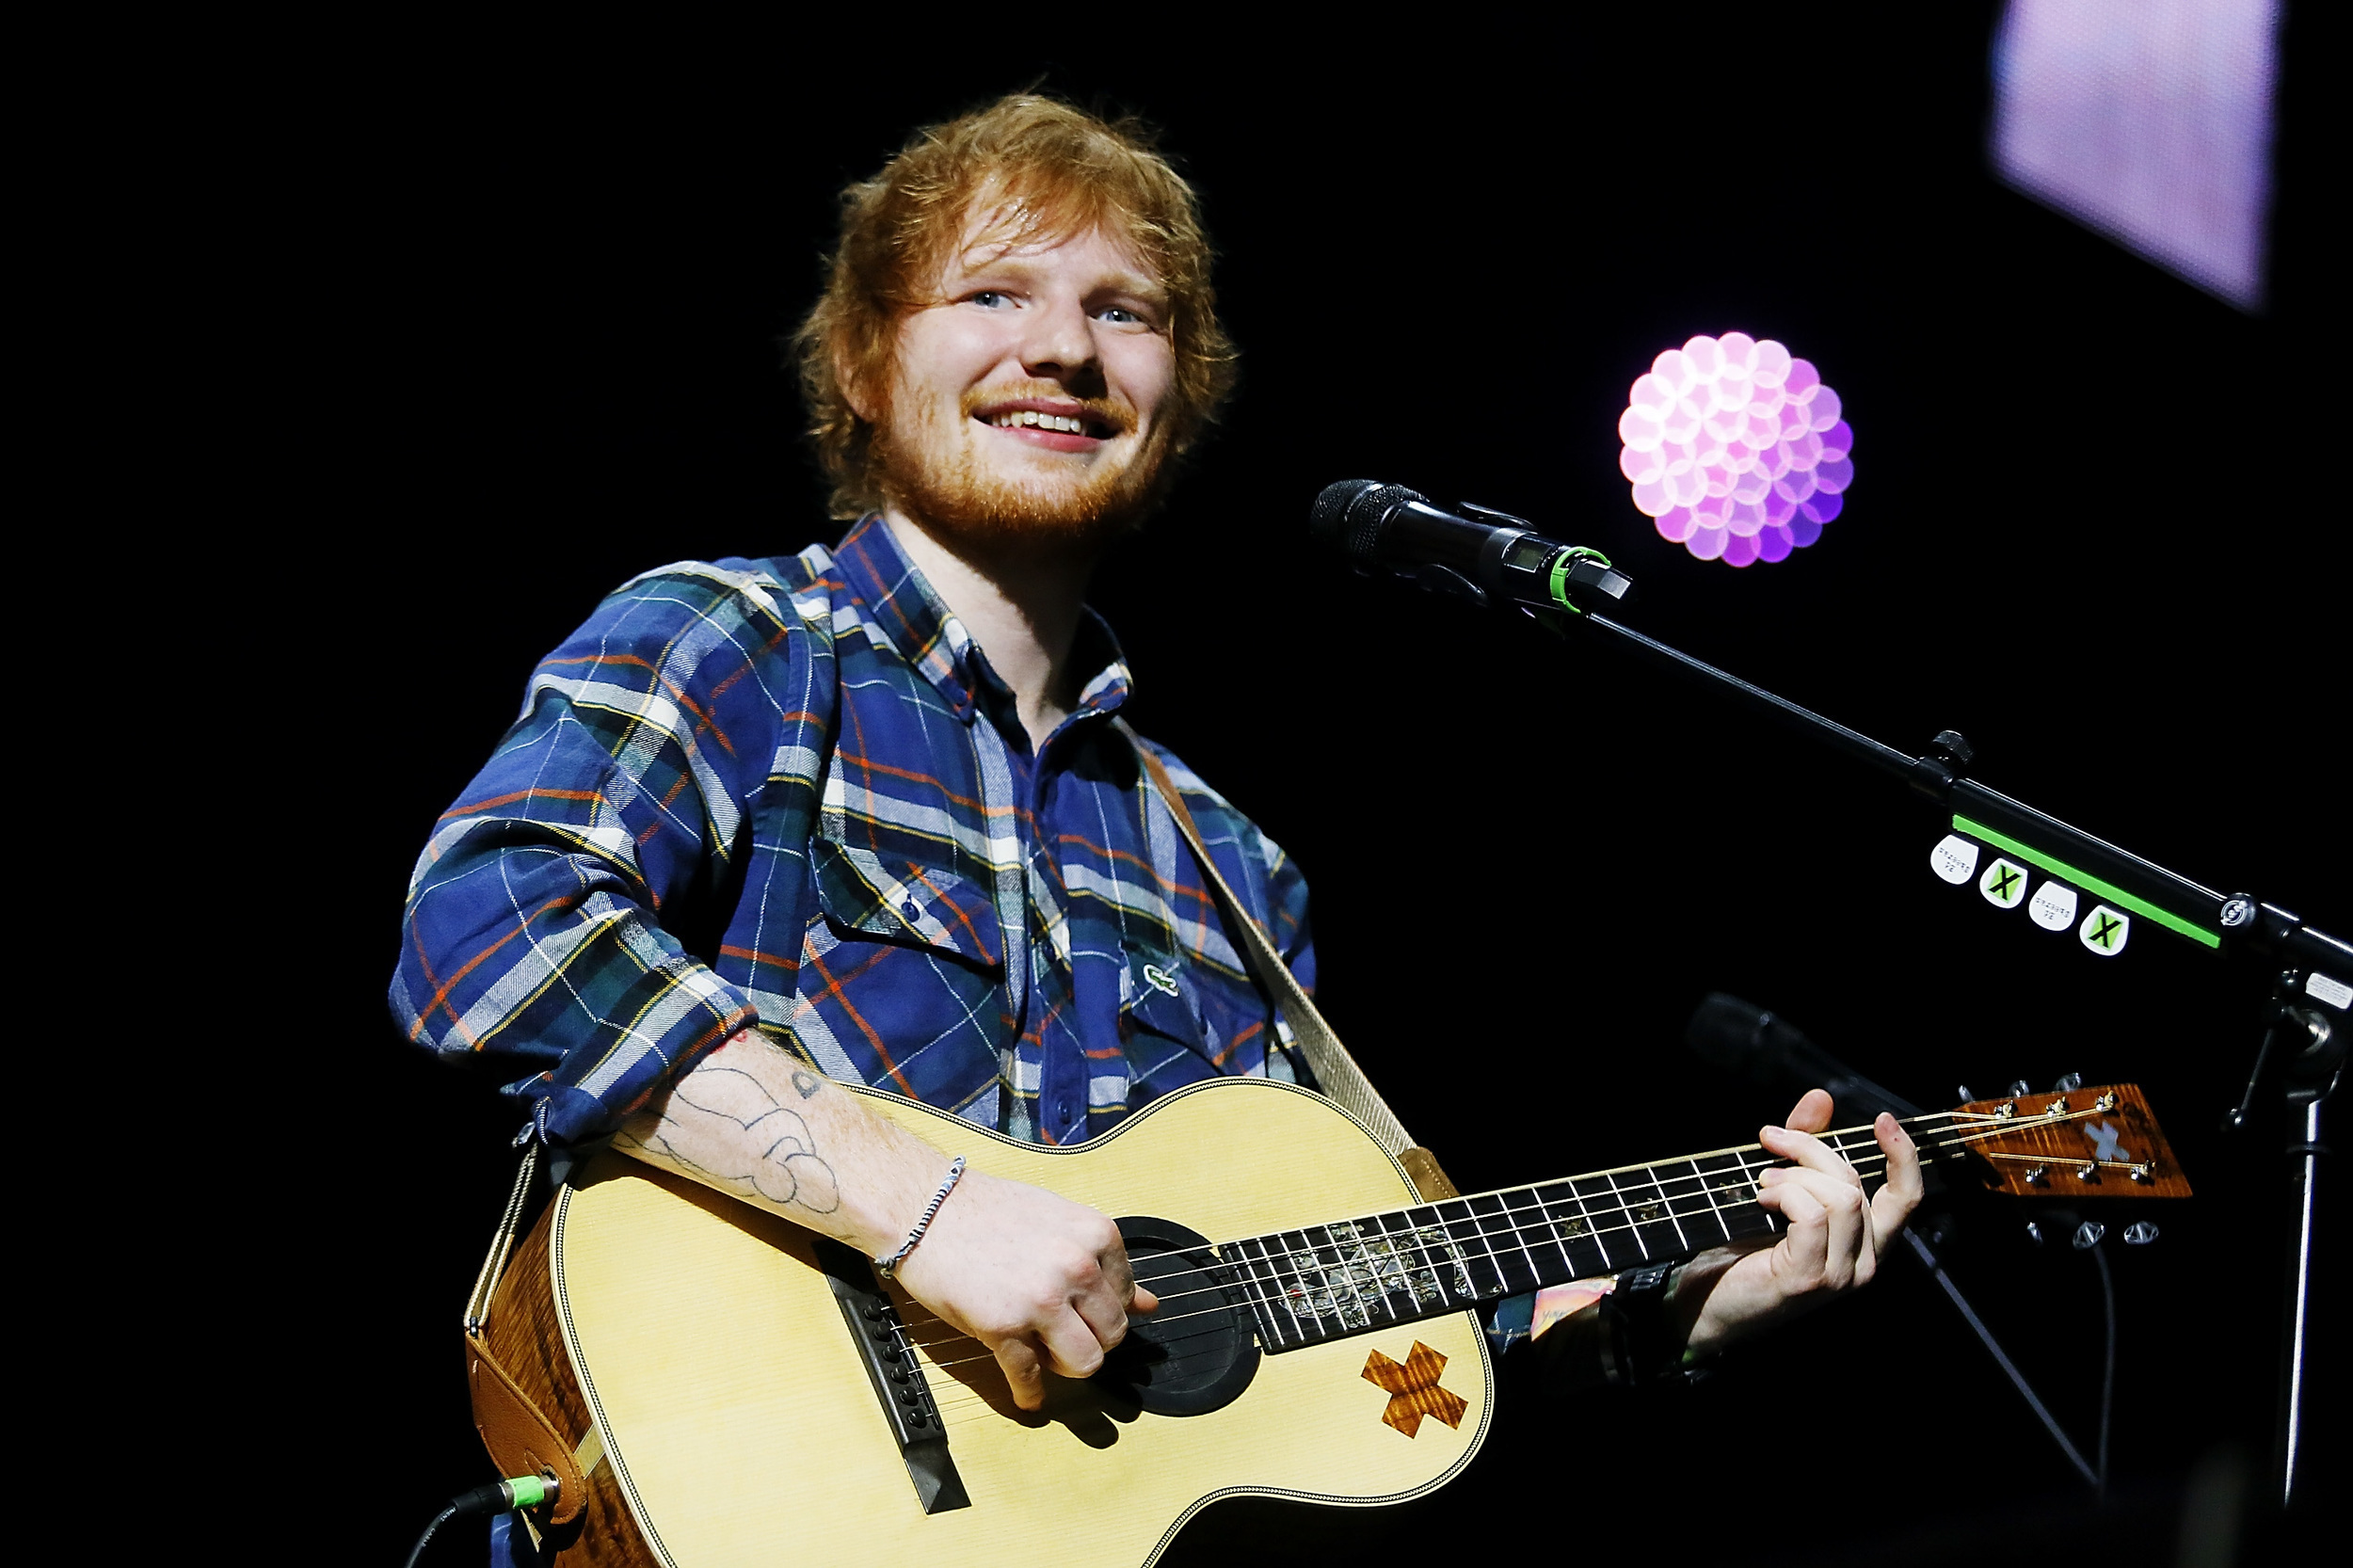 Ed Sheeran Wallpapers Images Photos Pictures Backgrounds